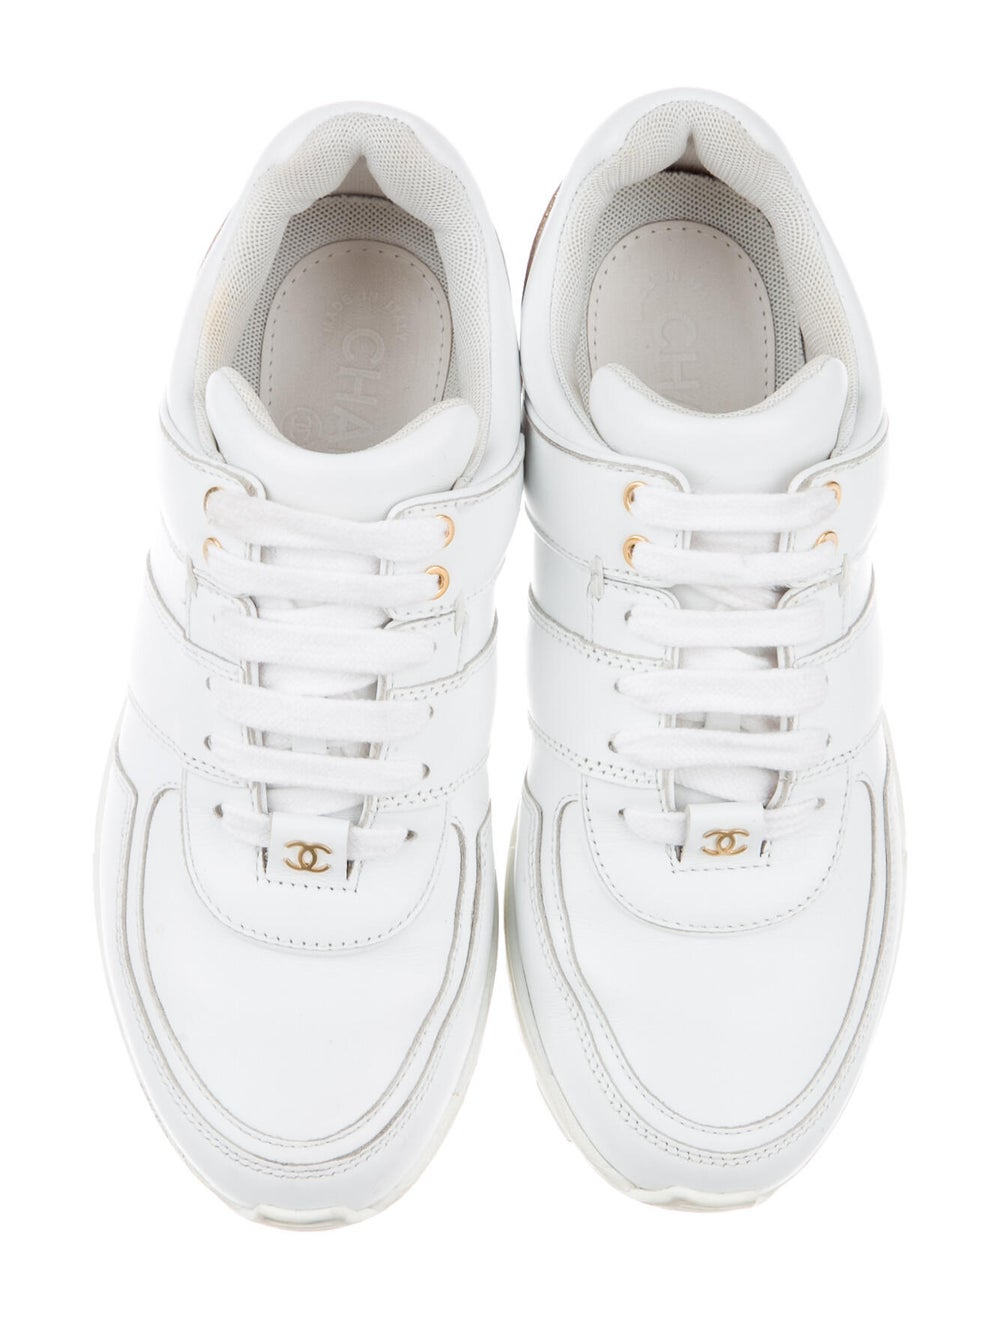 Chanel CC Low-Top Sneakers Sneakers White - image 3